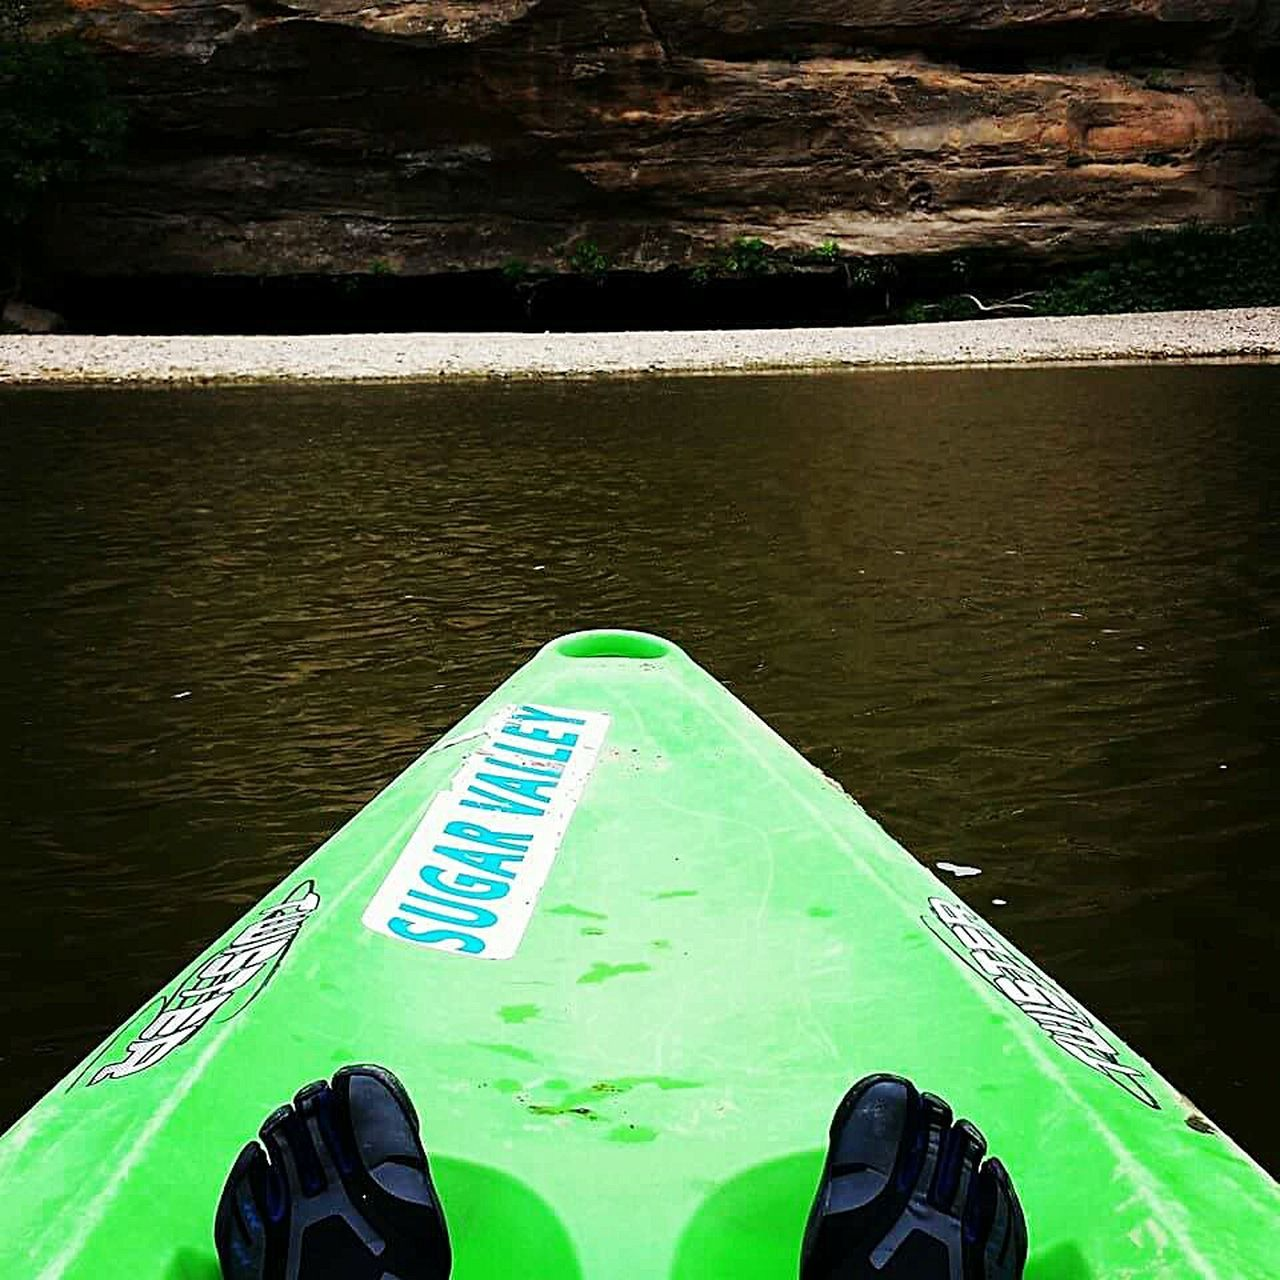 Kayak trip in Indiana a few years ago. Kayaking In Nature KayakLife River View EyeEm Nature Lover Eyem Gallery Goodtimes✌